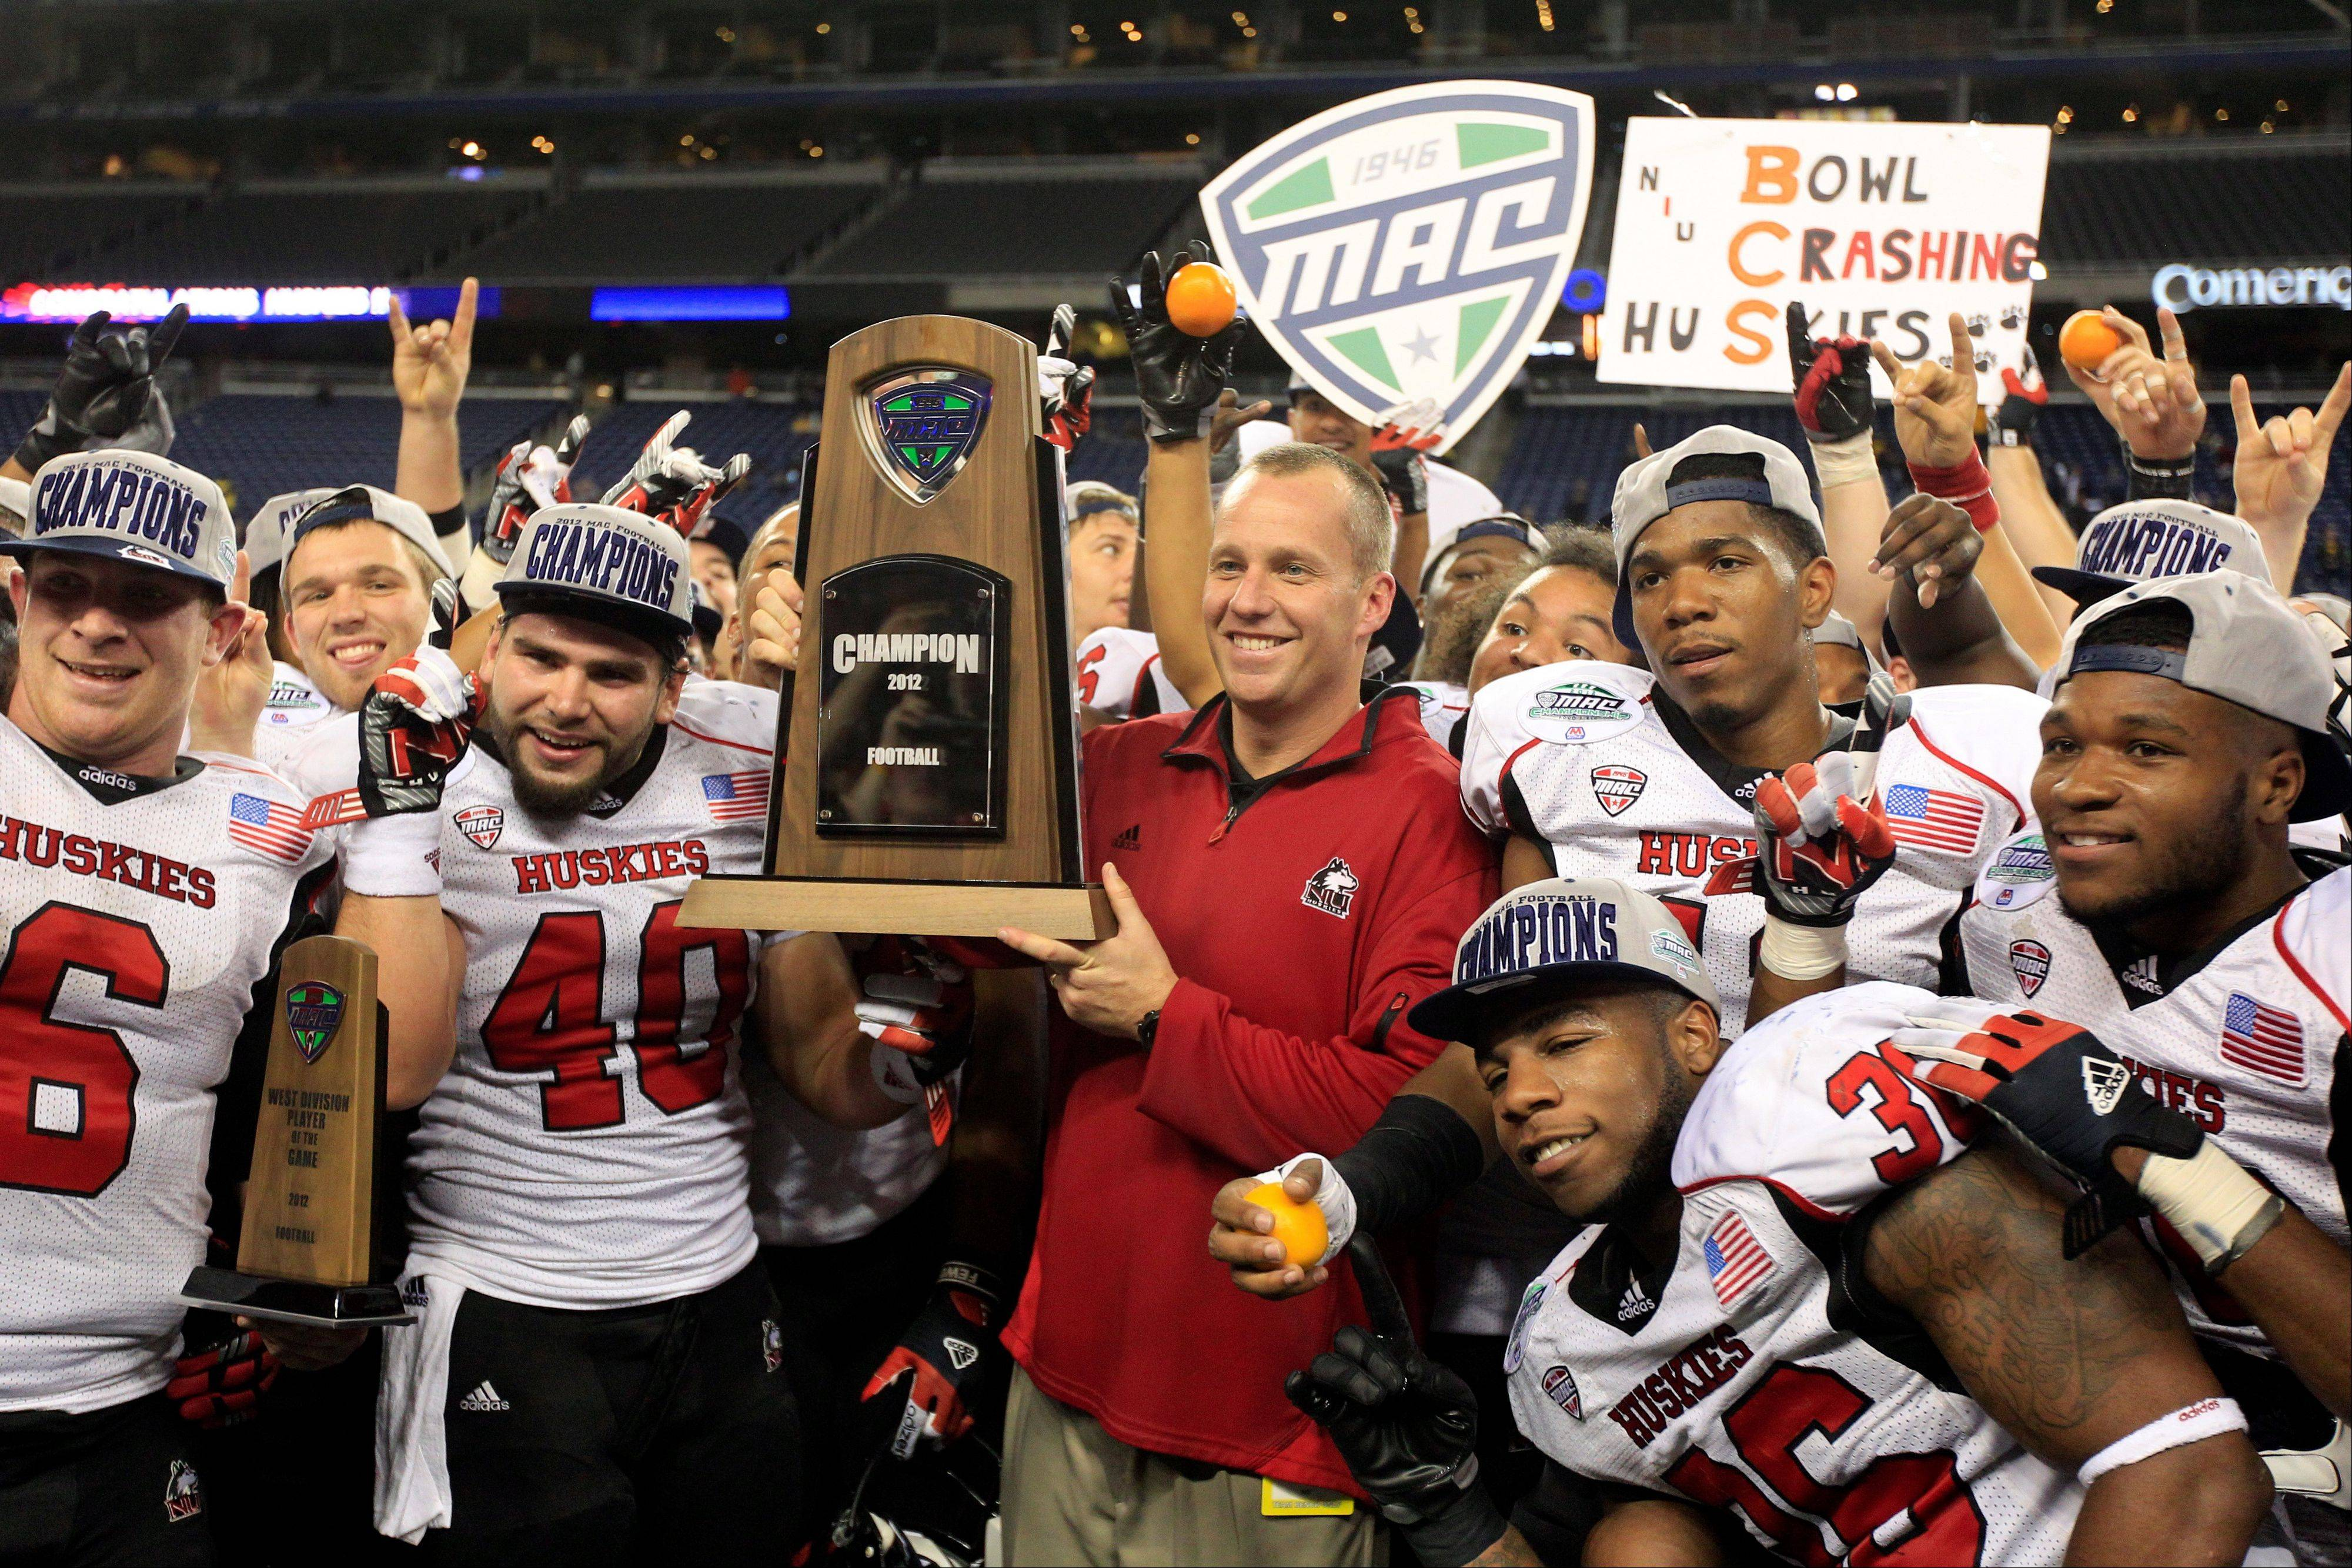 Northern Illinois head coach Dave Doeren, center, holds the Mid-American Conference championship trophy Friday after defeating Kent State 44-37 in double overtime at Ford Field in Detroit.